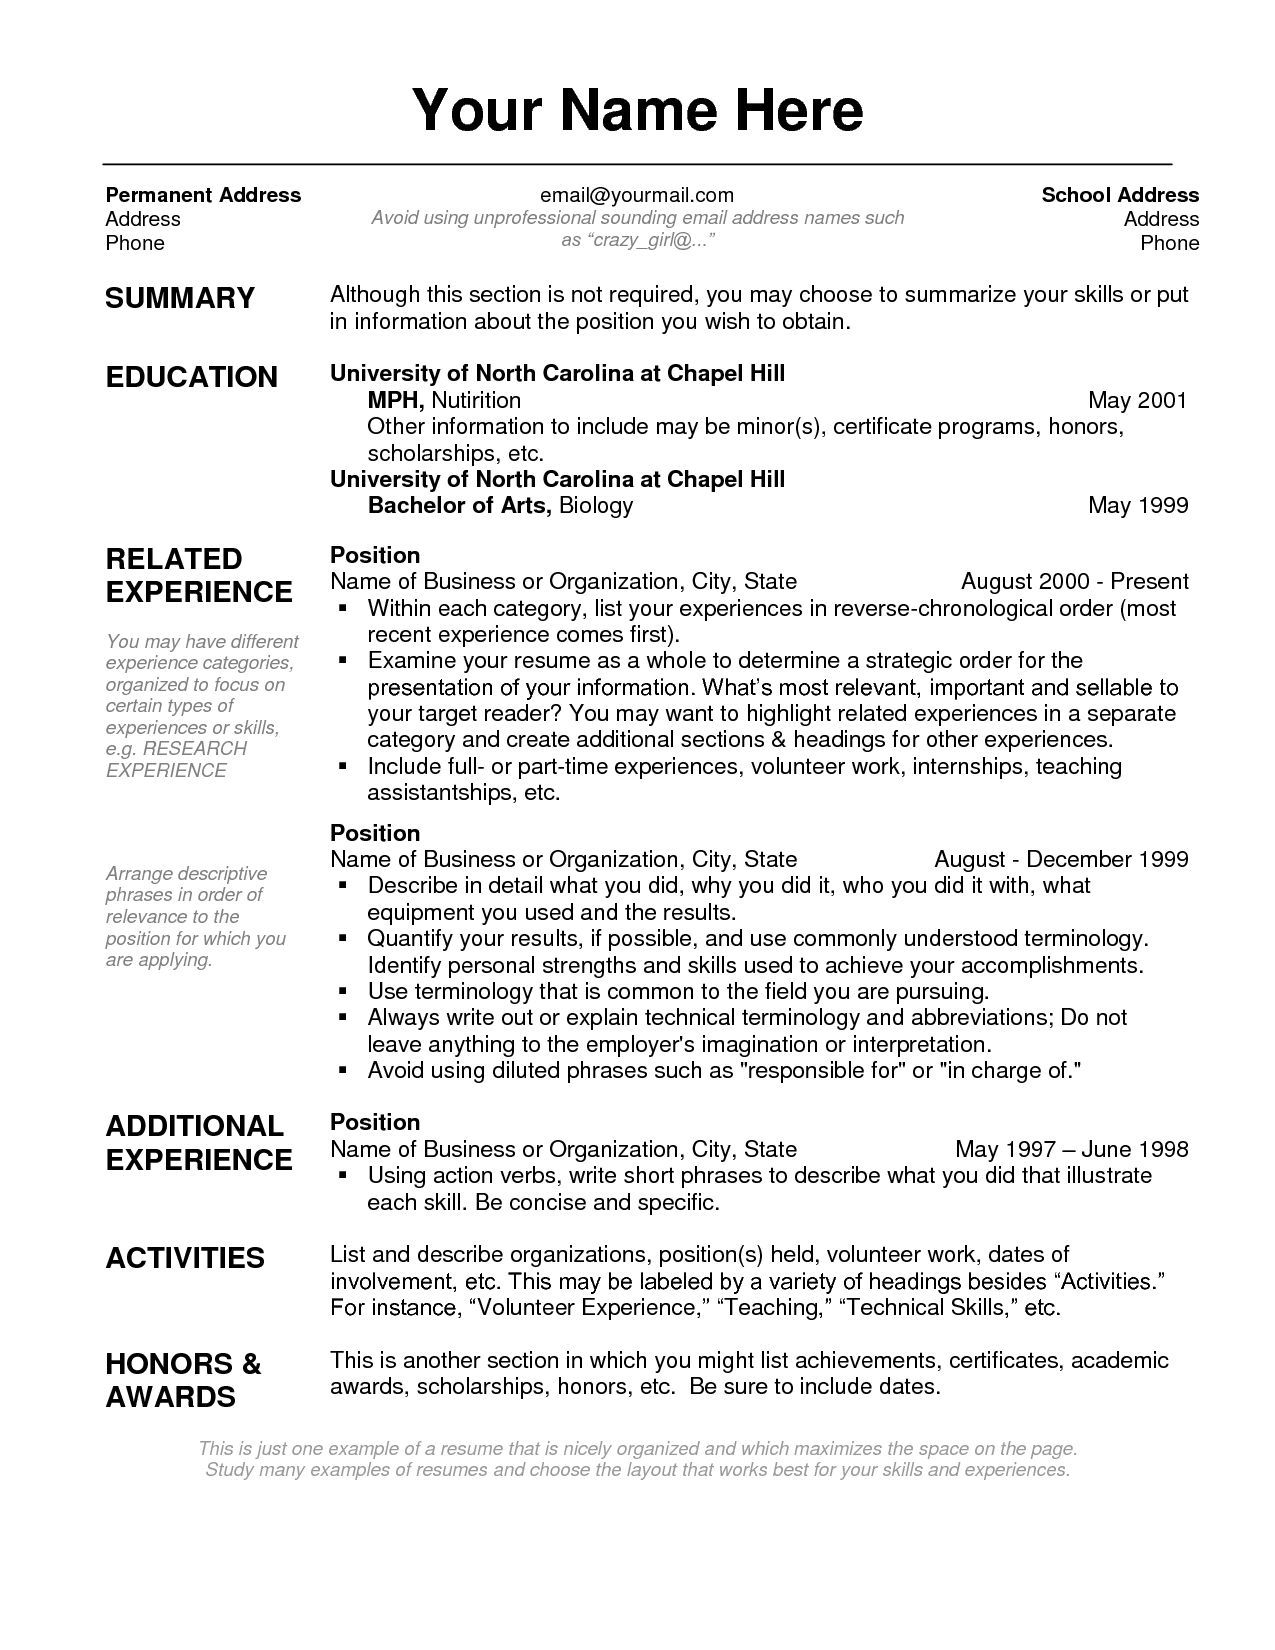 resume layout examples - Gese.ciceros.co